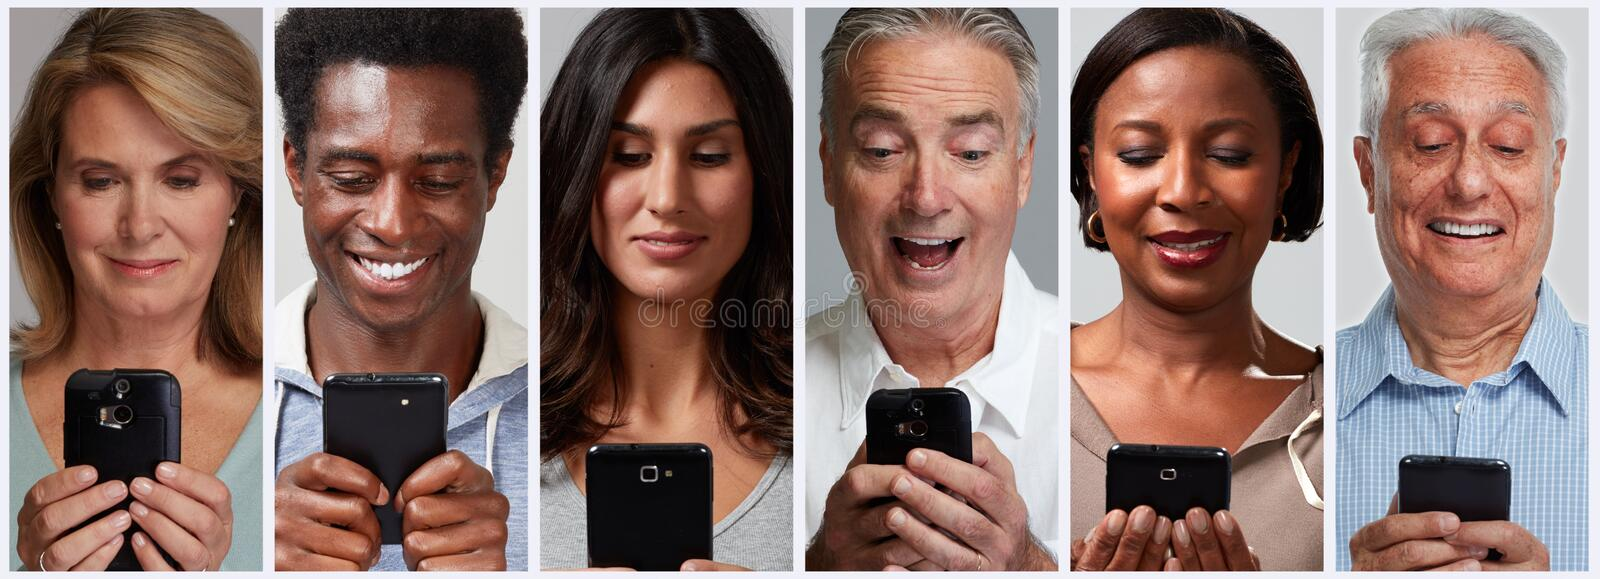 People with smartphones and mobile cell phones stock image